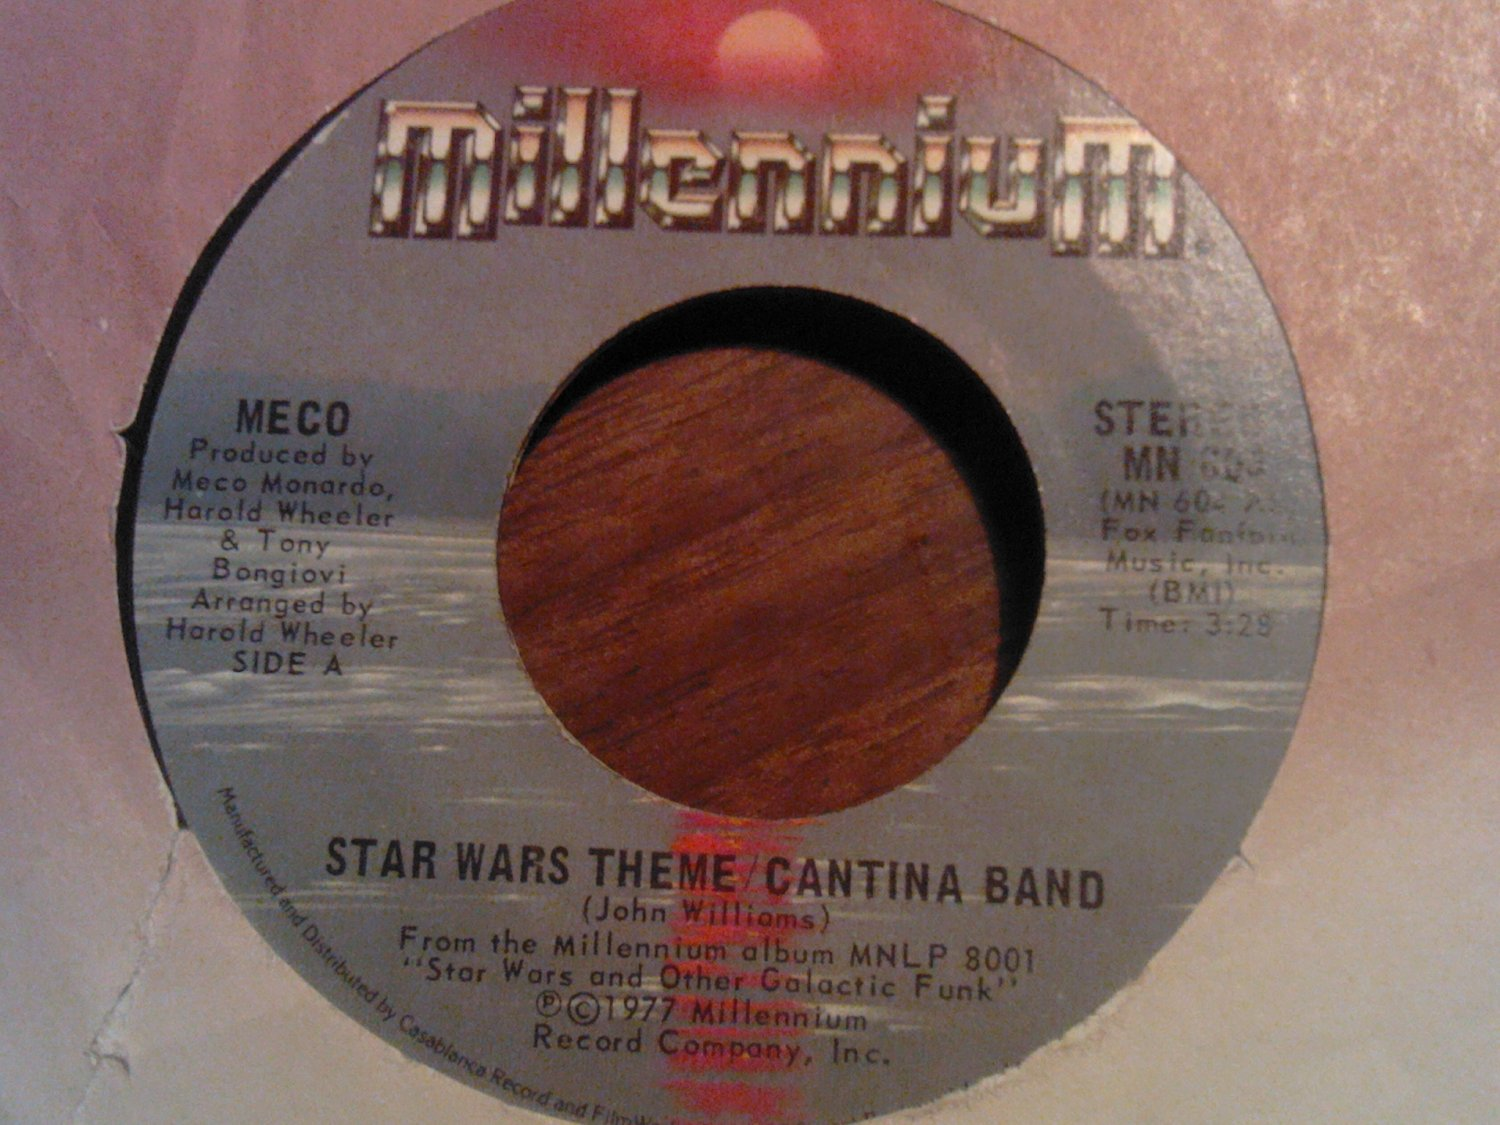 45 MECO star wars theme/canina band b/w funk vintage vinyl record